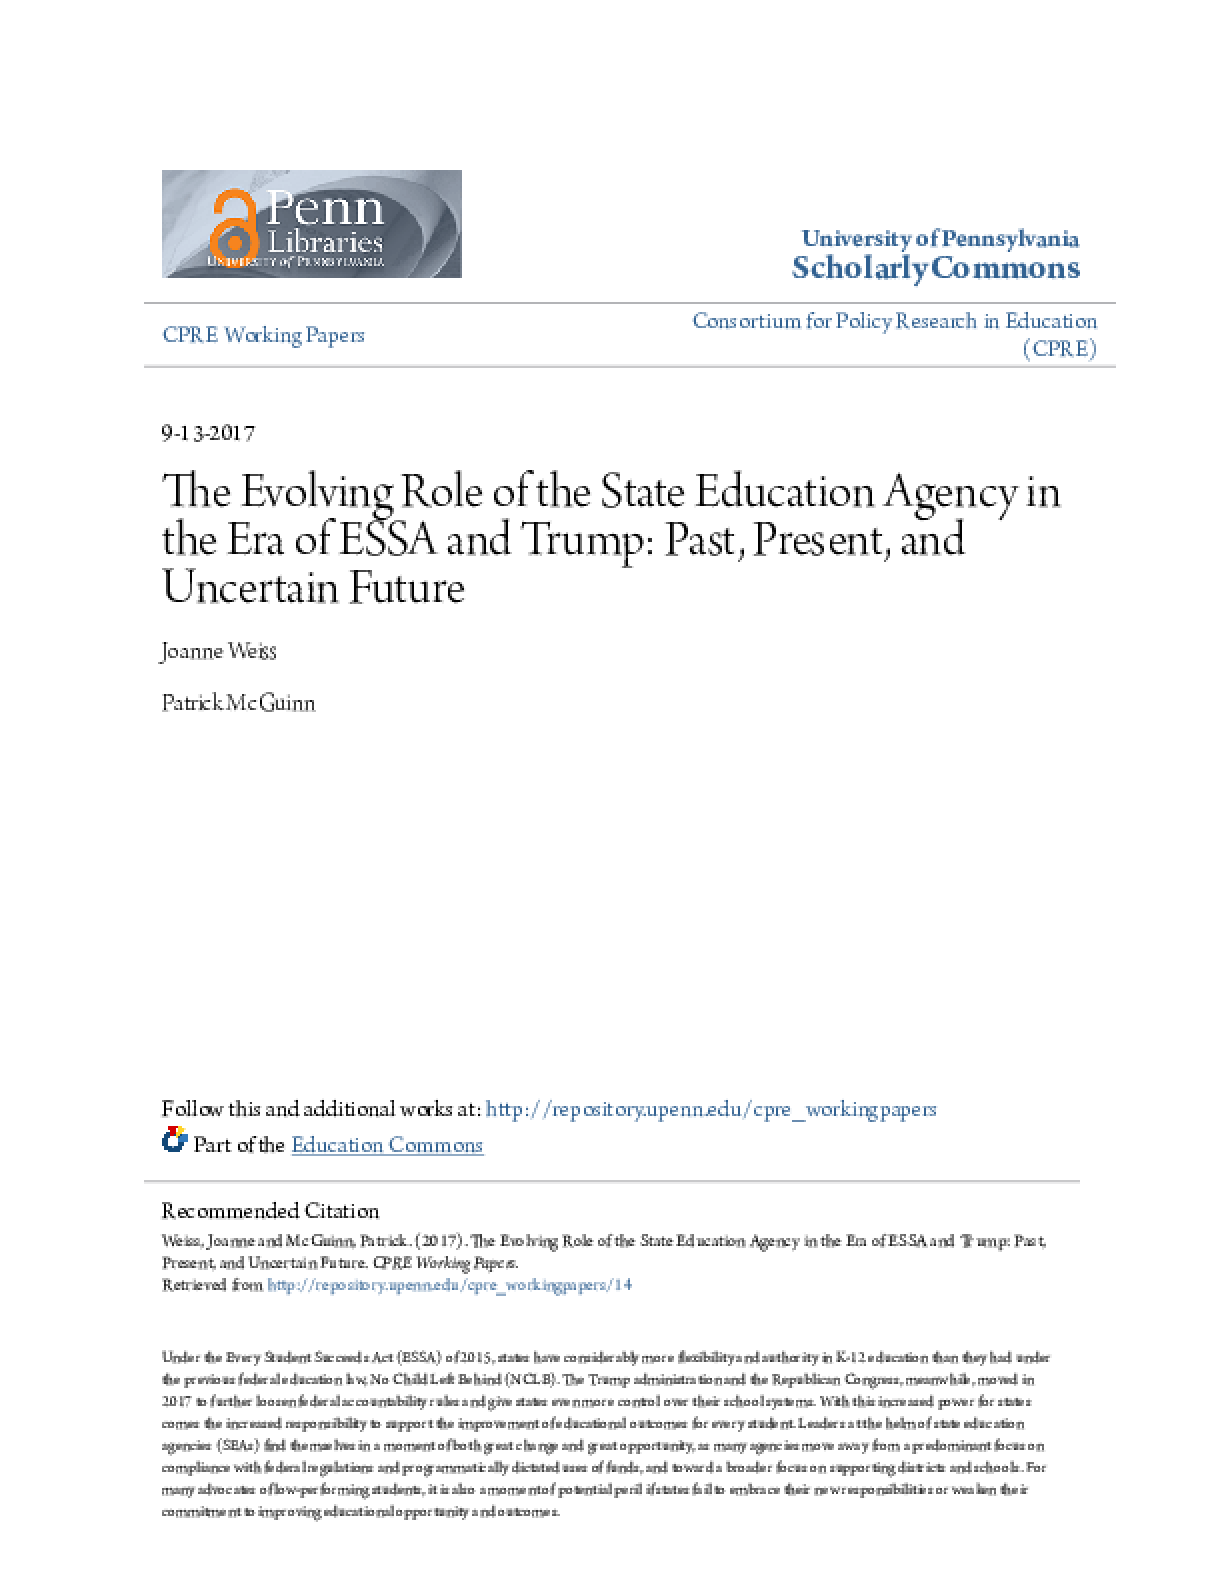 The Evolving Role of the State Education Agency in the Era of ESSA and Trump: Past, Present, and Uncertain Future